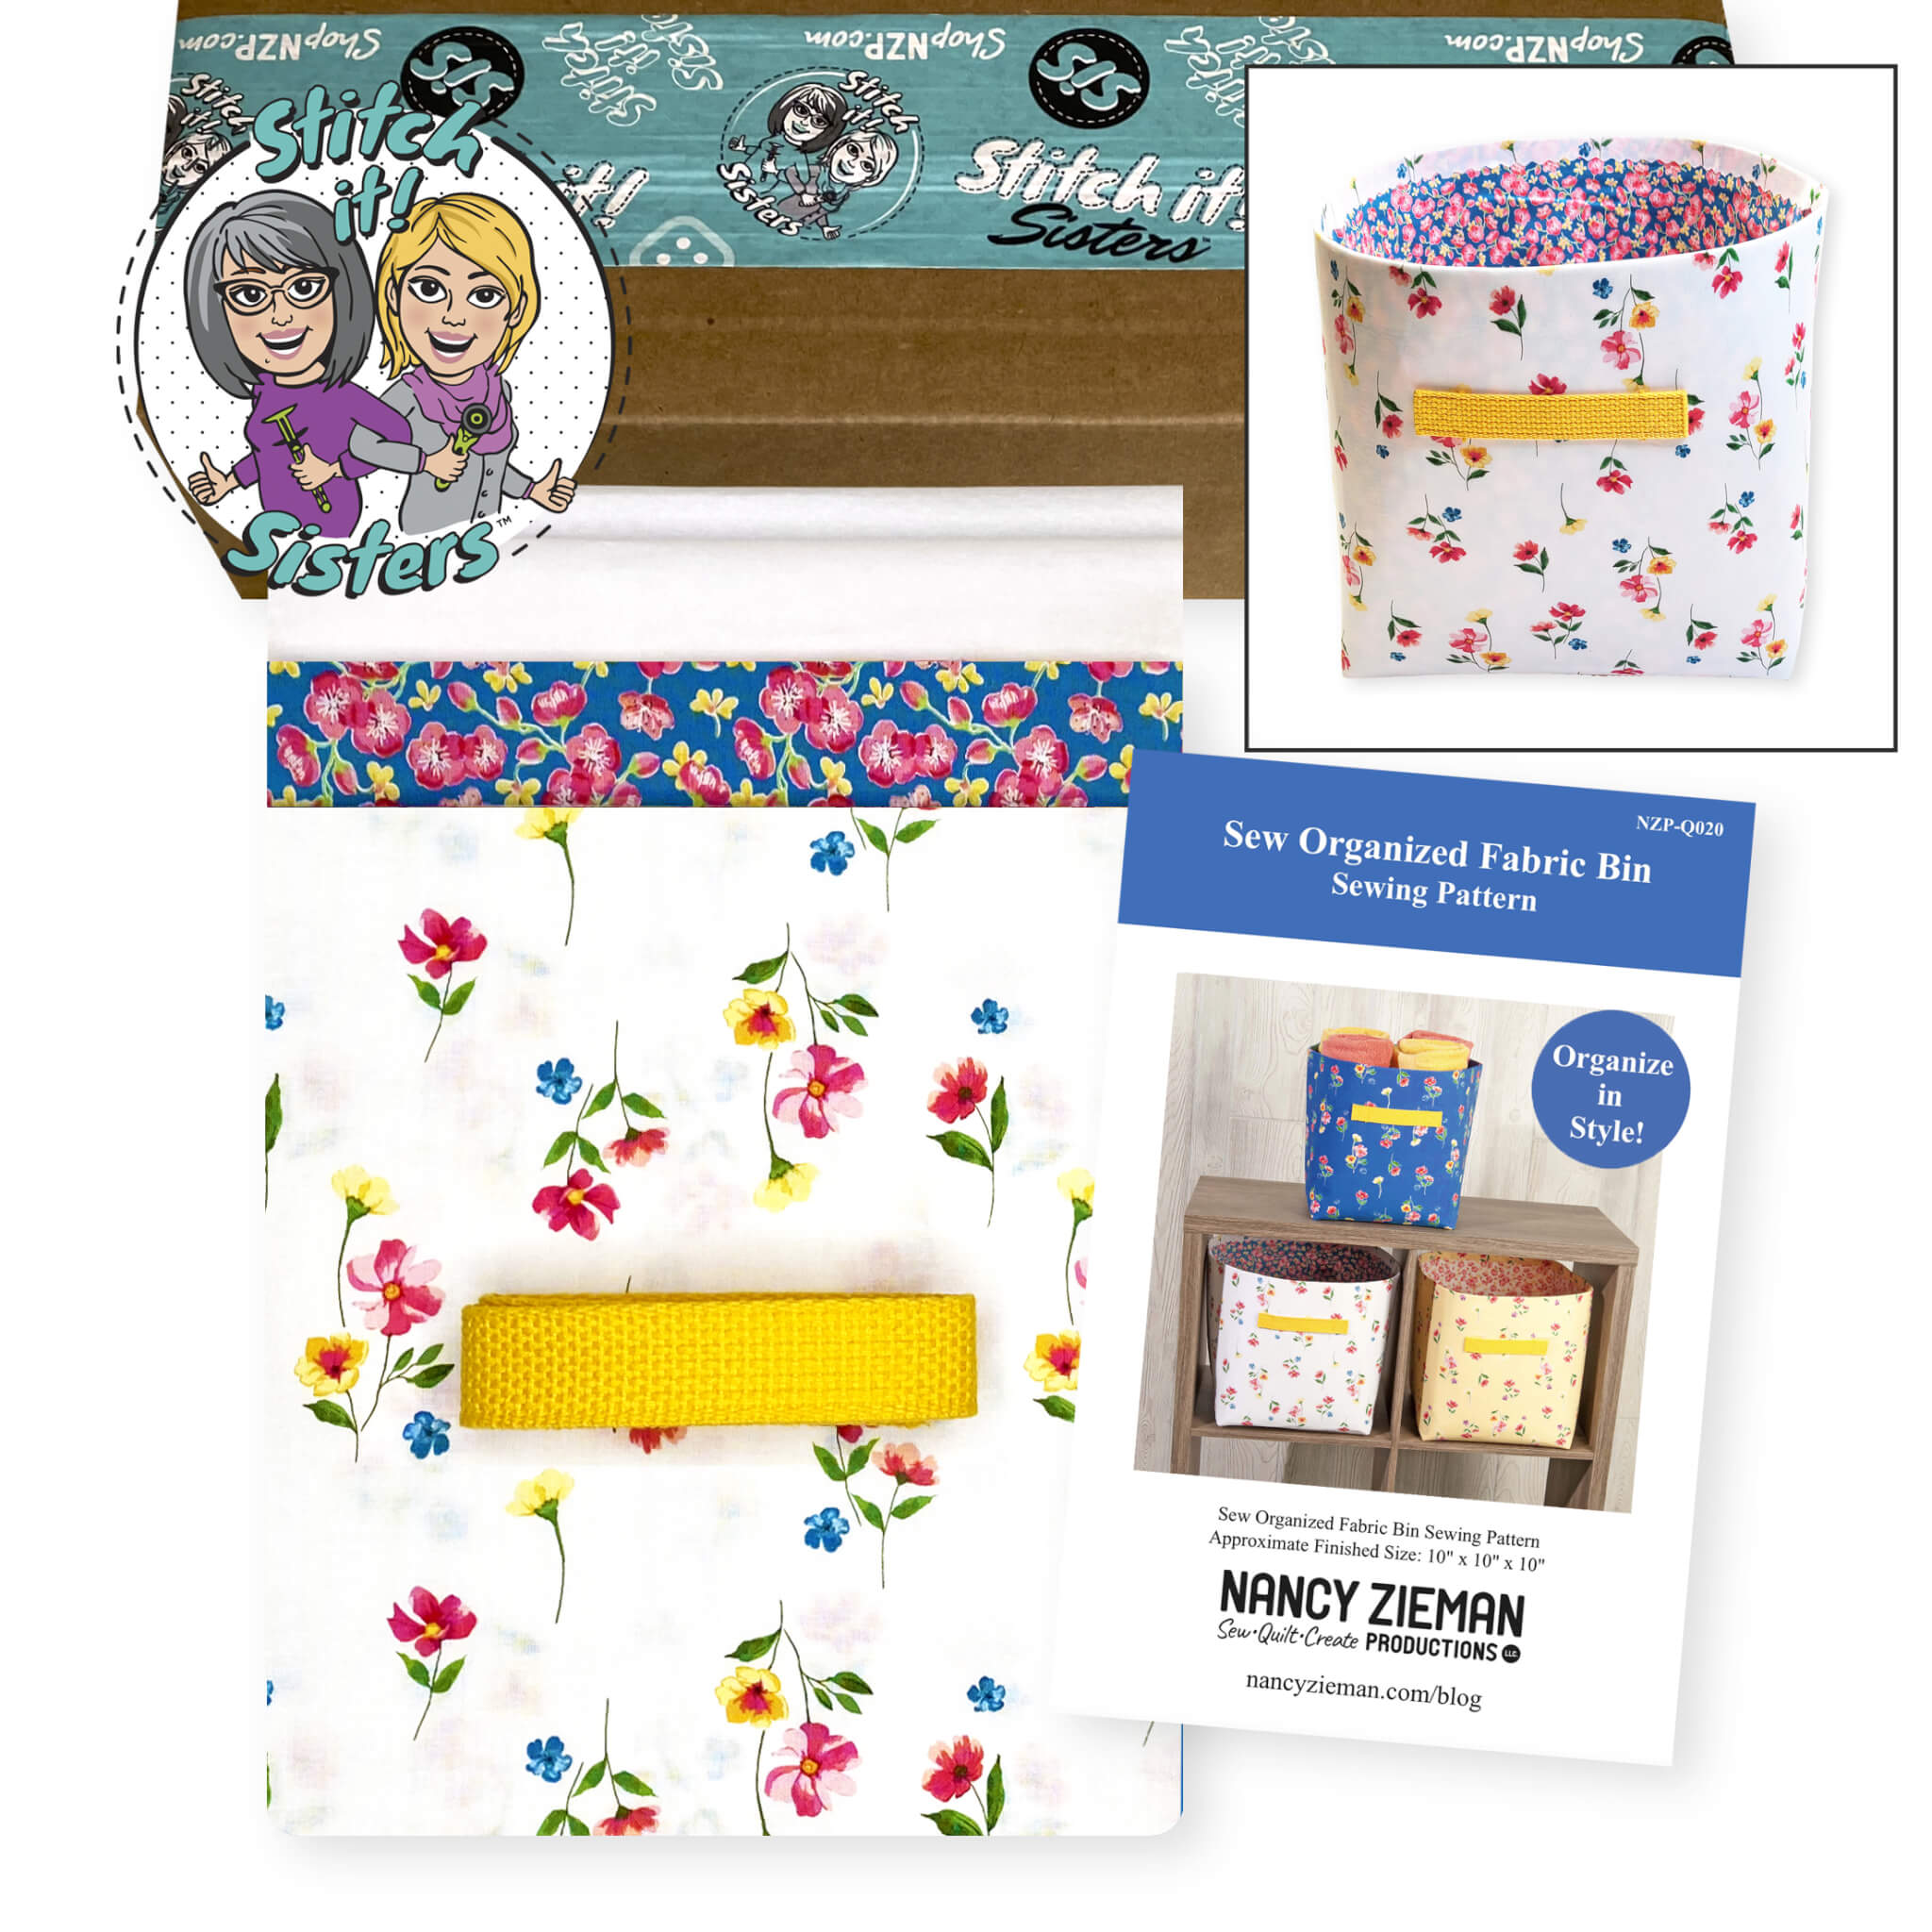 NZP-Q021_02 Sew Organized Fabric Bin Sewing Pattern available at Nancy Zieman Productions at ShopNZP.com